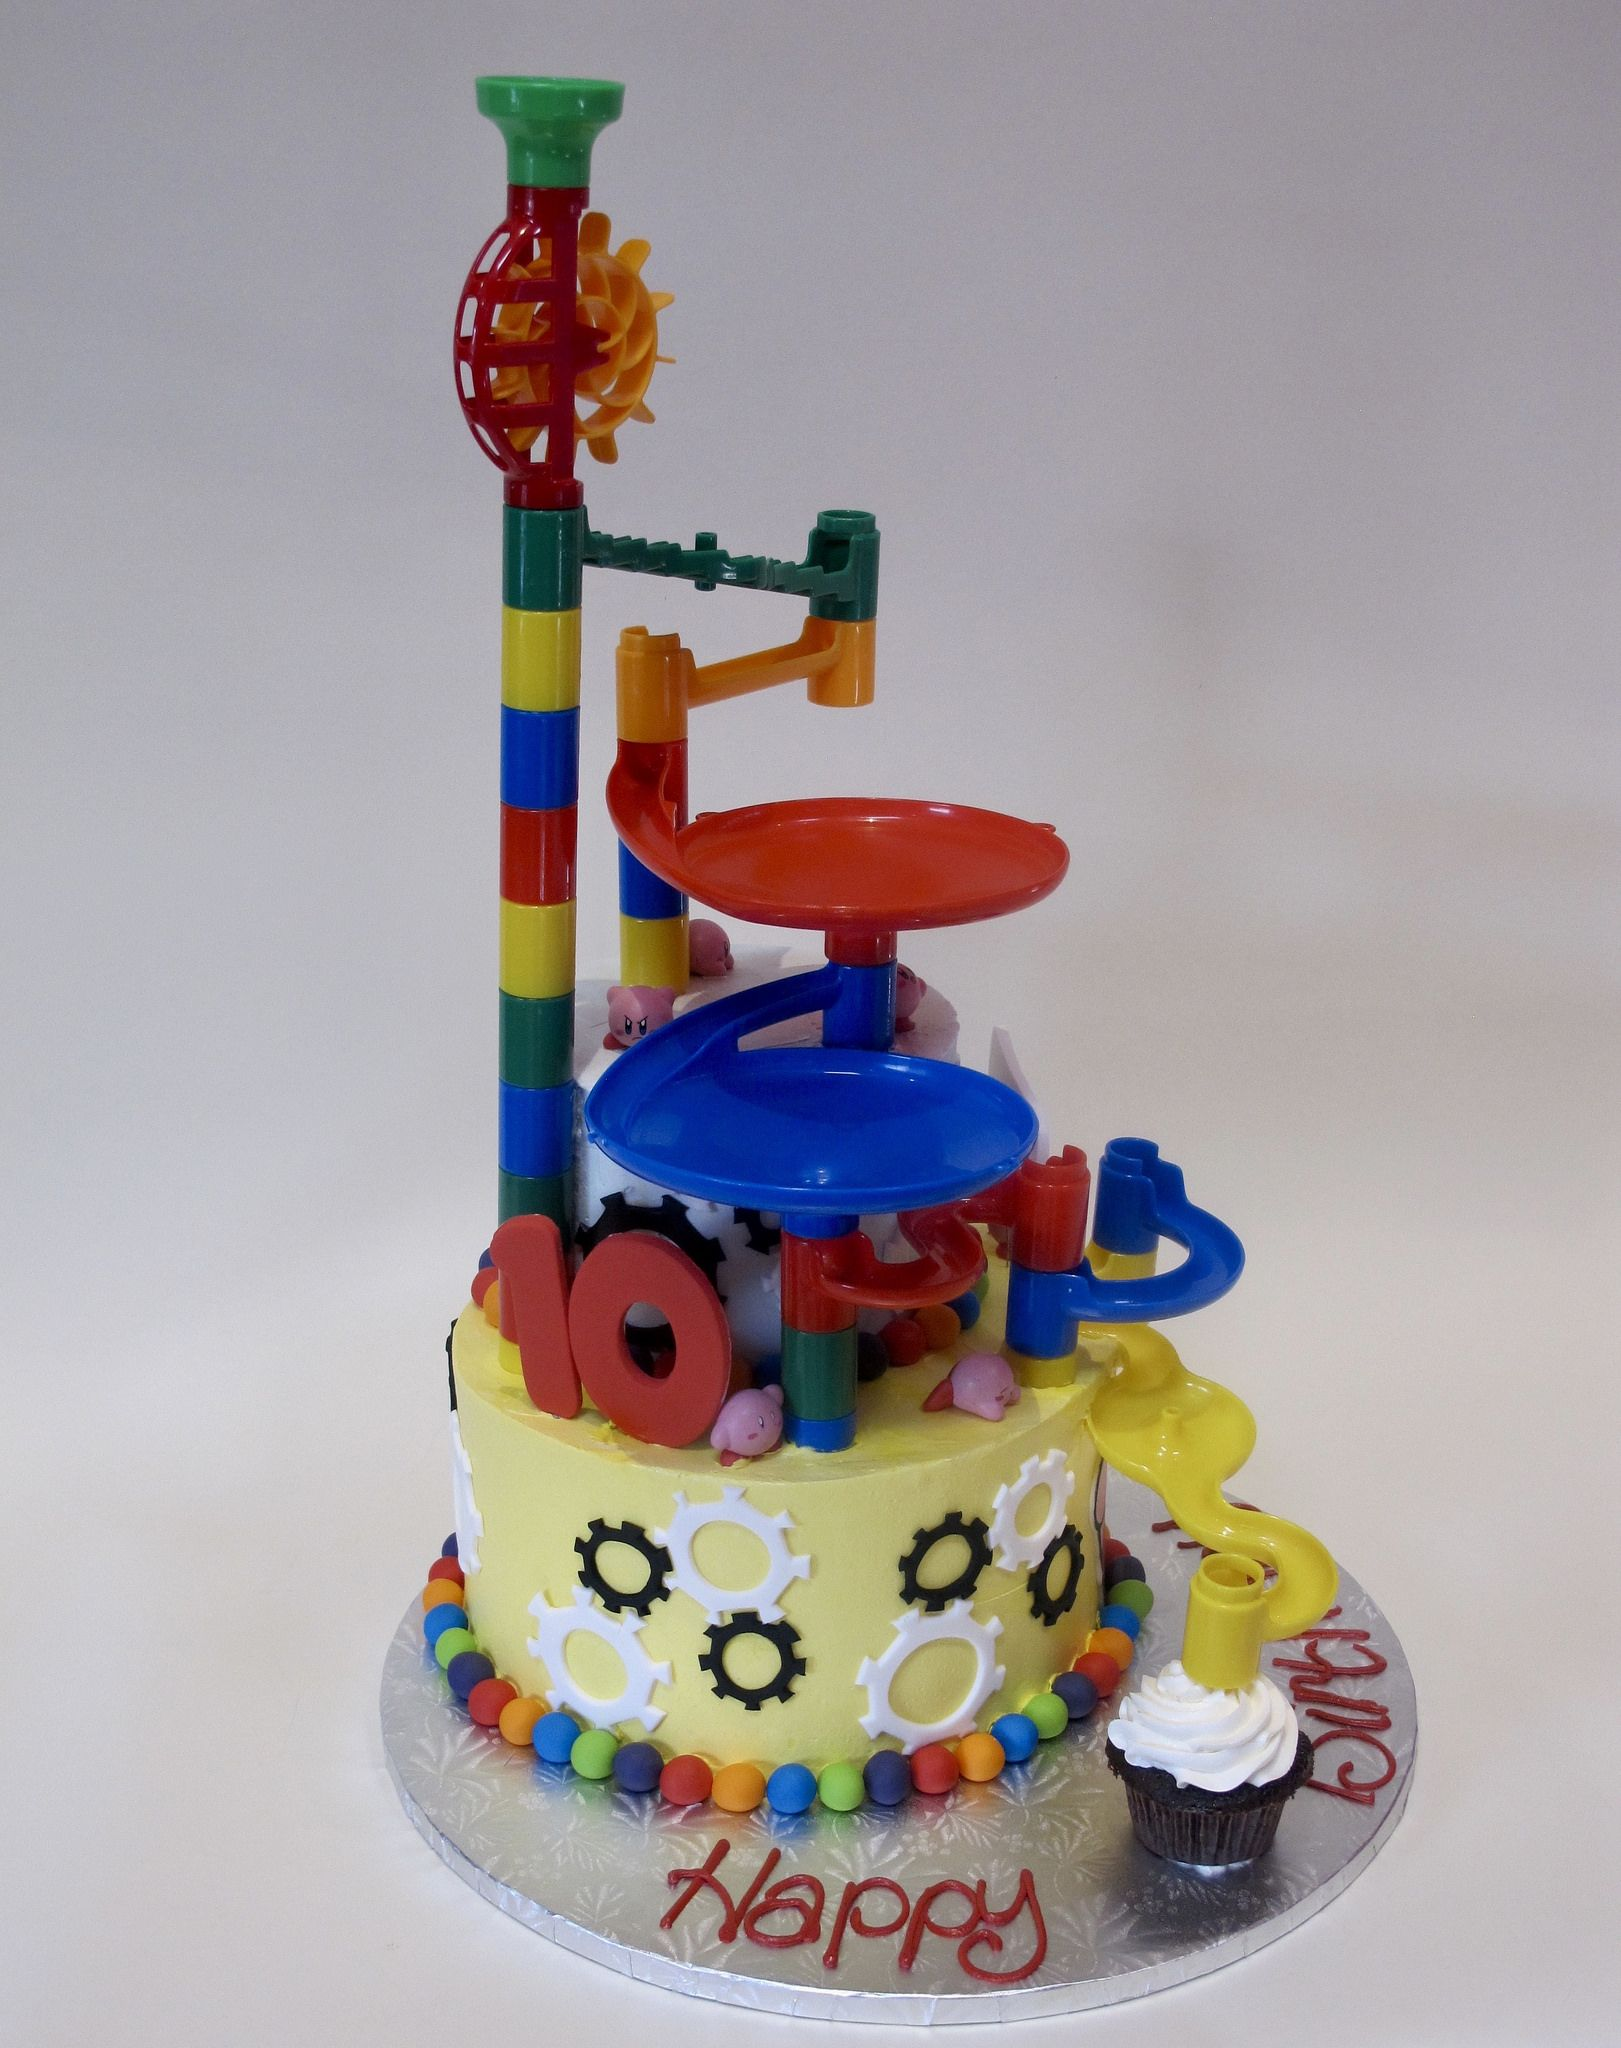 Colin S Marble Maze 10th Birthday Cake Side 2 300447 10 Birthday Cake Birthday Cake Childrens Birthday Cakes